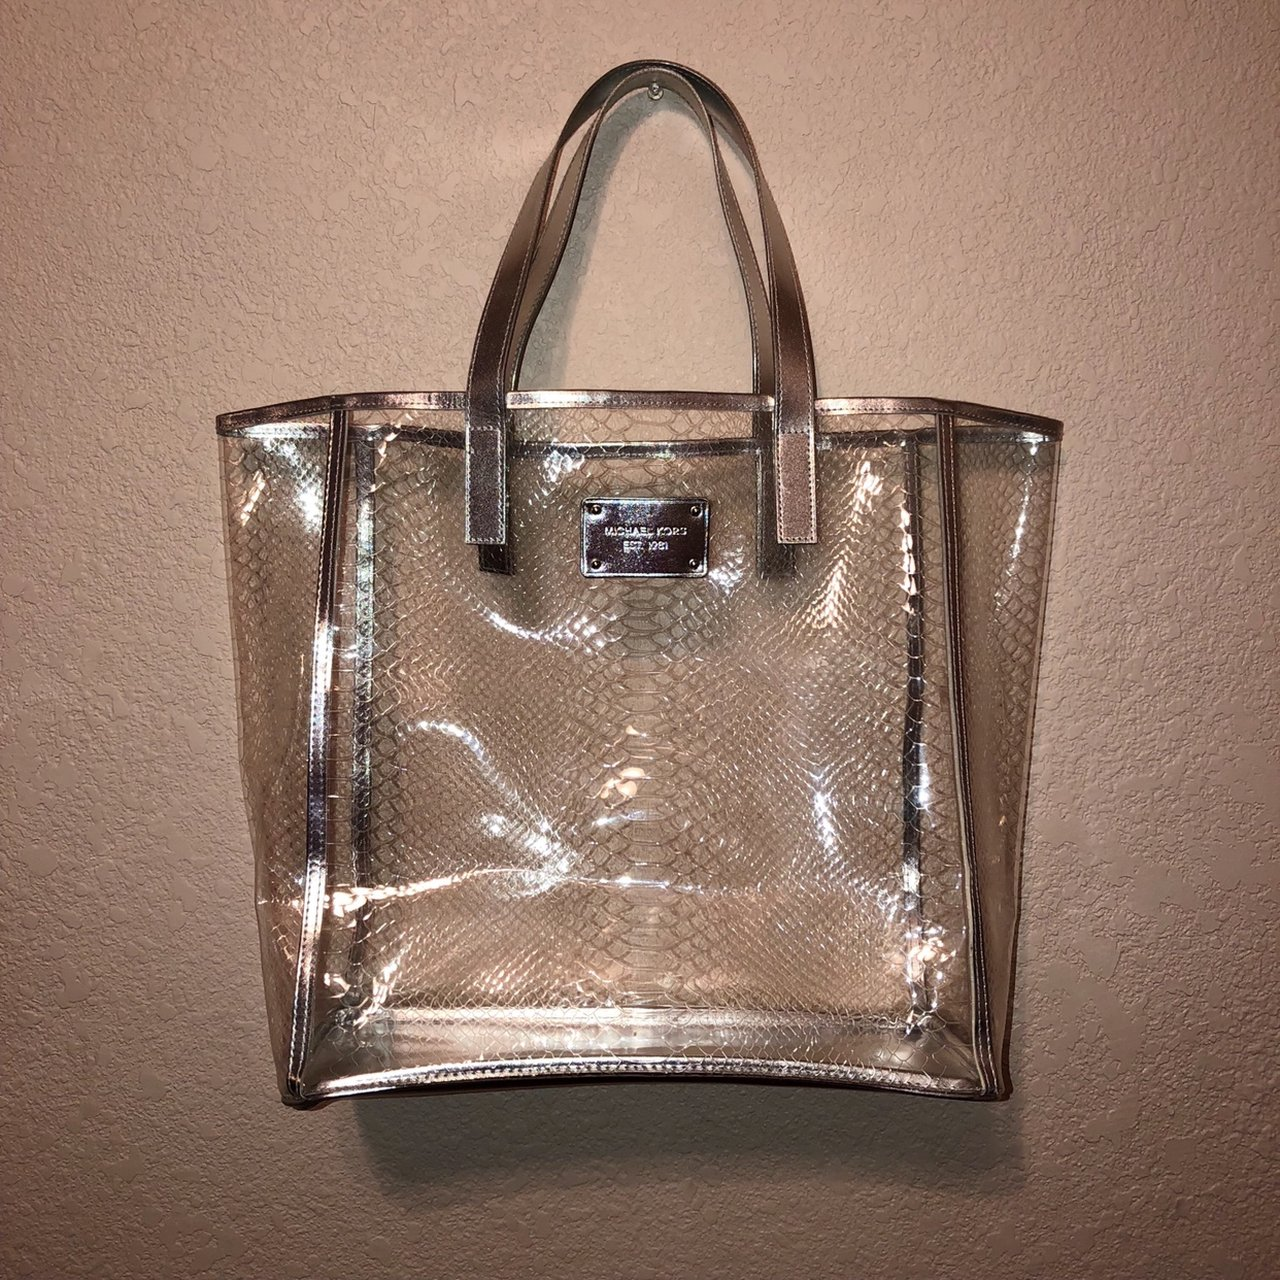 46cdb6ed5028d9 @helloreyez. 8 months ago. United States. MICHAEL KORS CLEAR BAG, SILVER  TRIM * LIMITED EDITION!